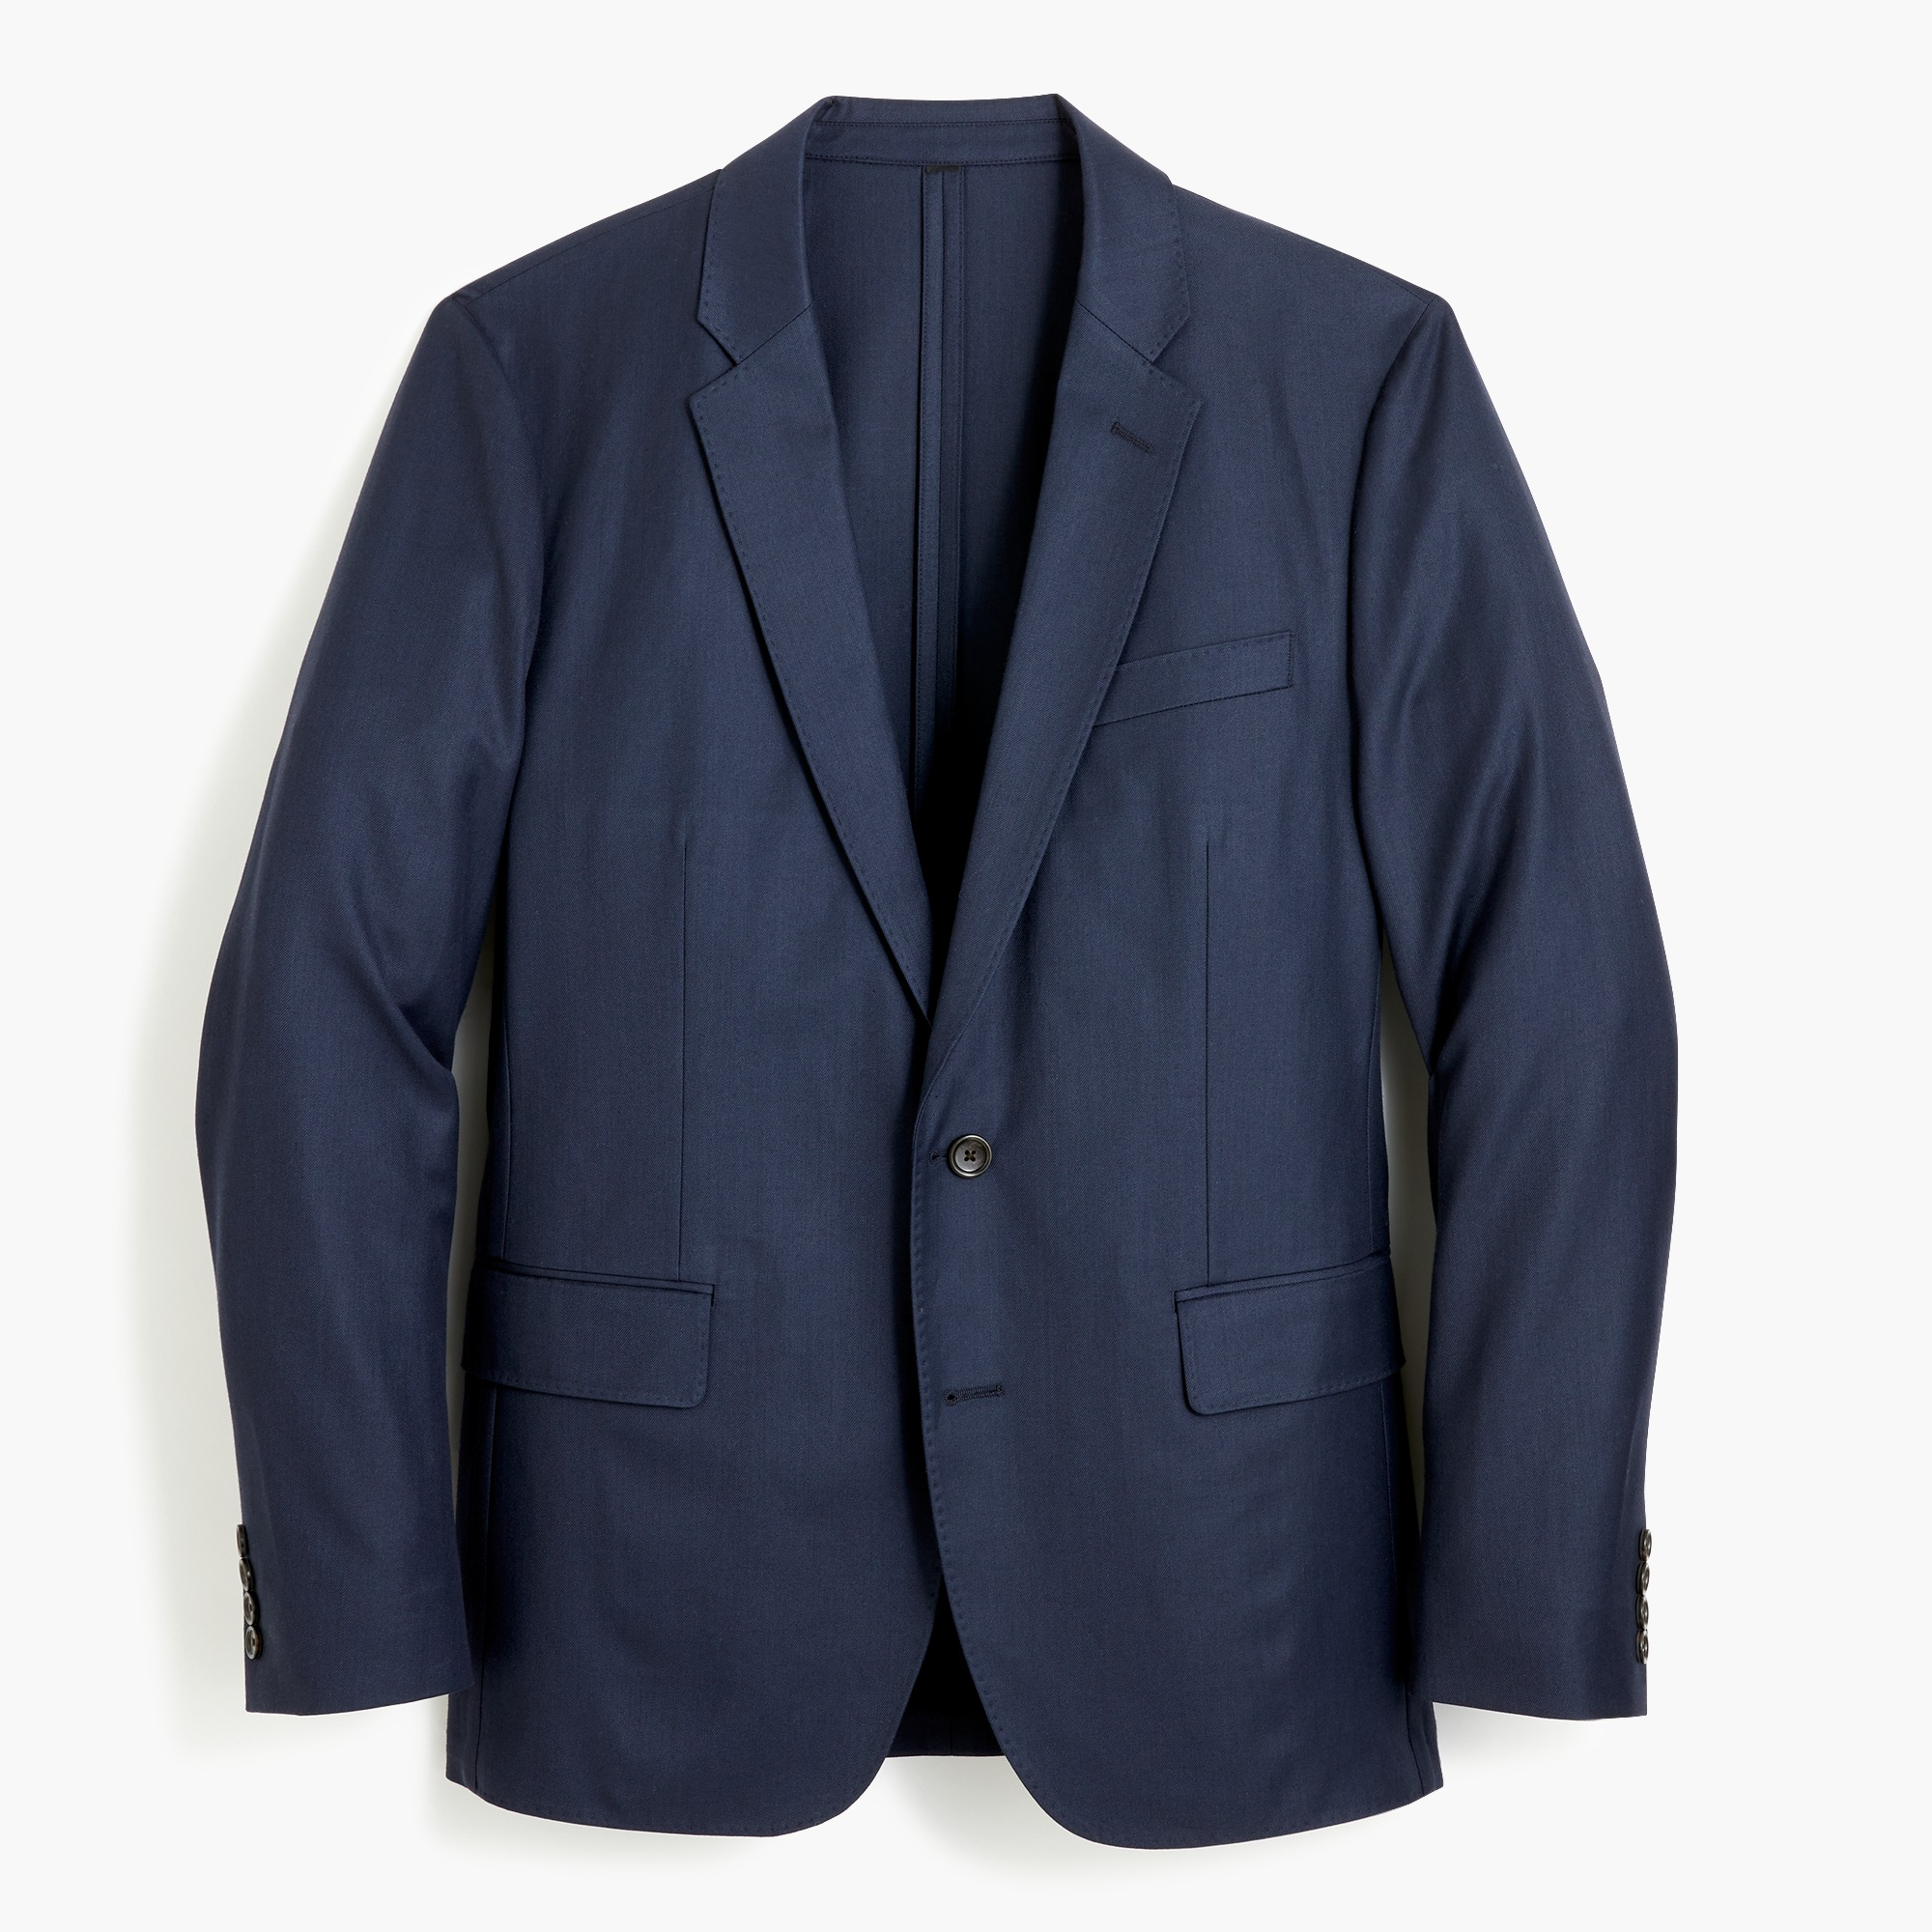 Image 5 for Ludlow Slim-fit unstructured blazer in American wool